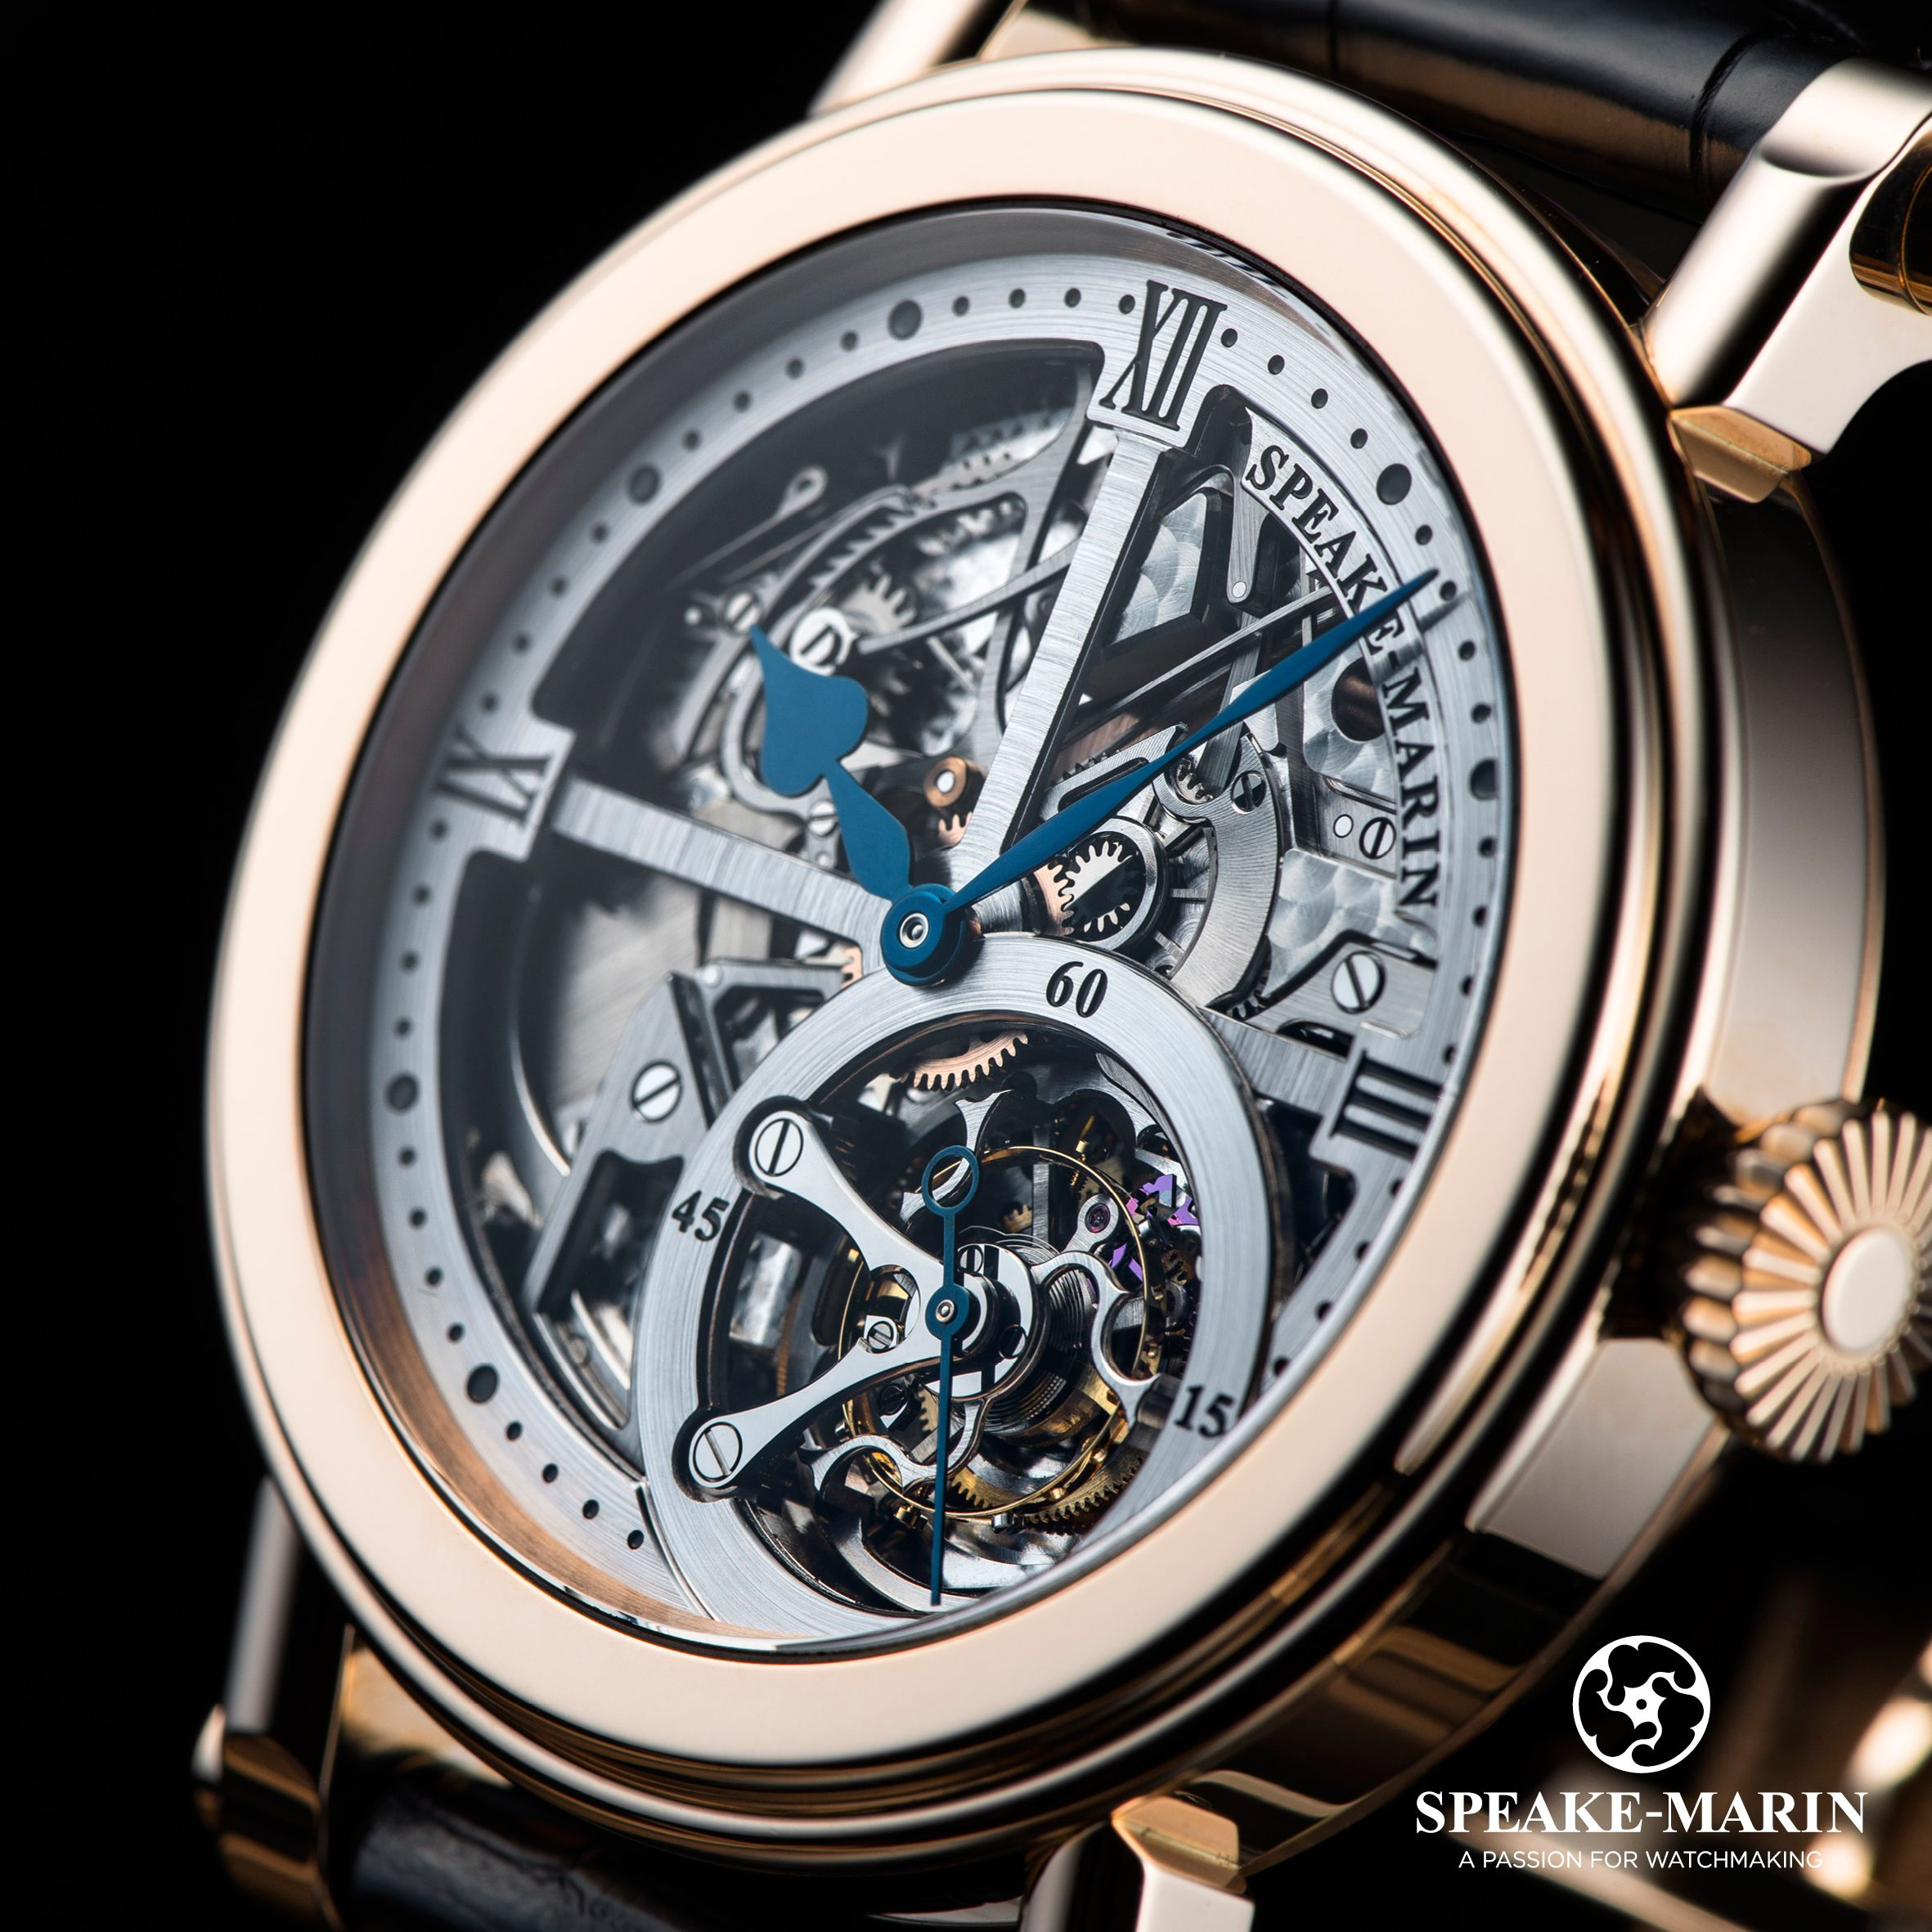 it as jaeger but cap orbitaltourbillon s myst is the jlc mix live of skeletonized lecoultre blog watches a more impression complex pearl dial depth rieuse tourbillon discover describes in arabesque mother tourbillons orbital